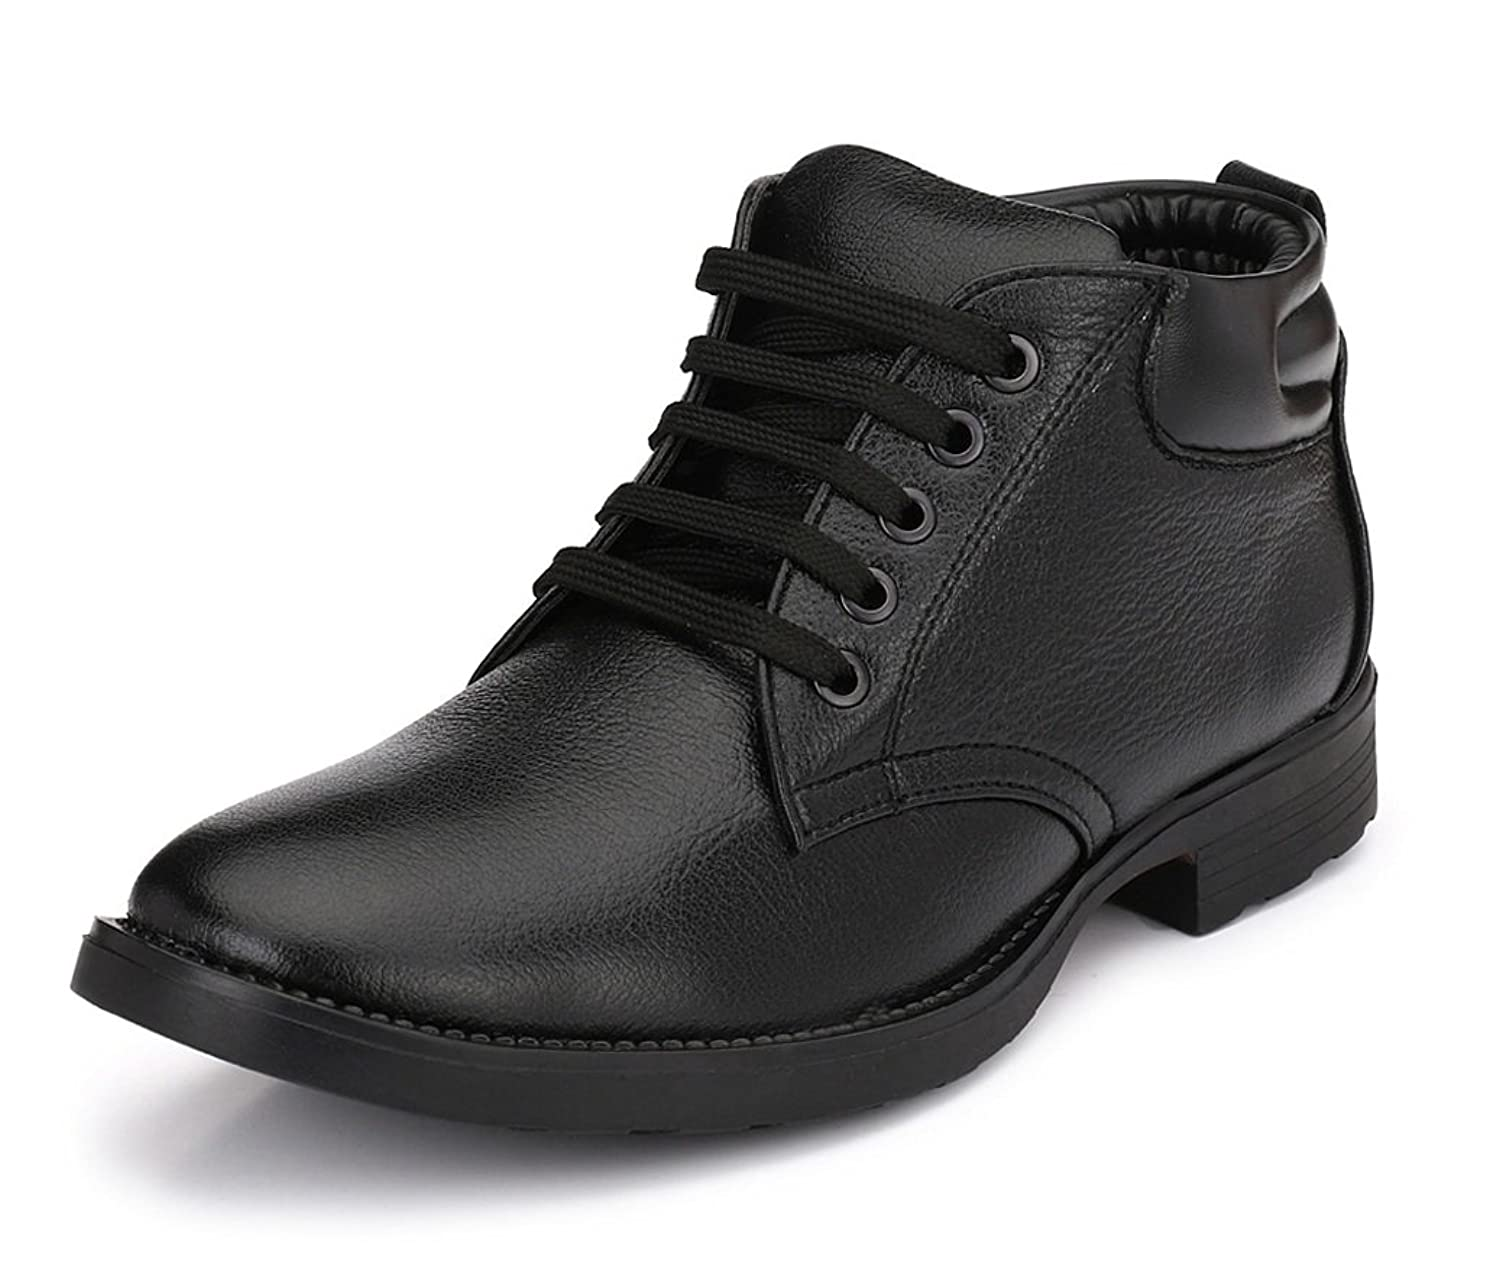 8c2e913a9788 Boots For Men  Buy Men Boots online at best prices in India - Amazon.in